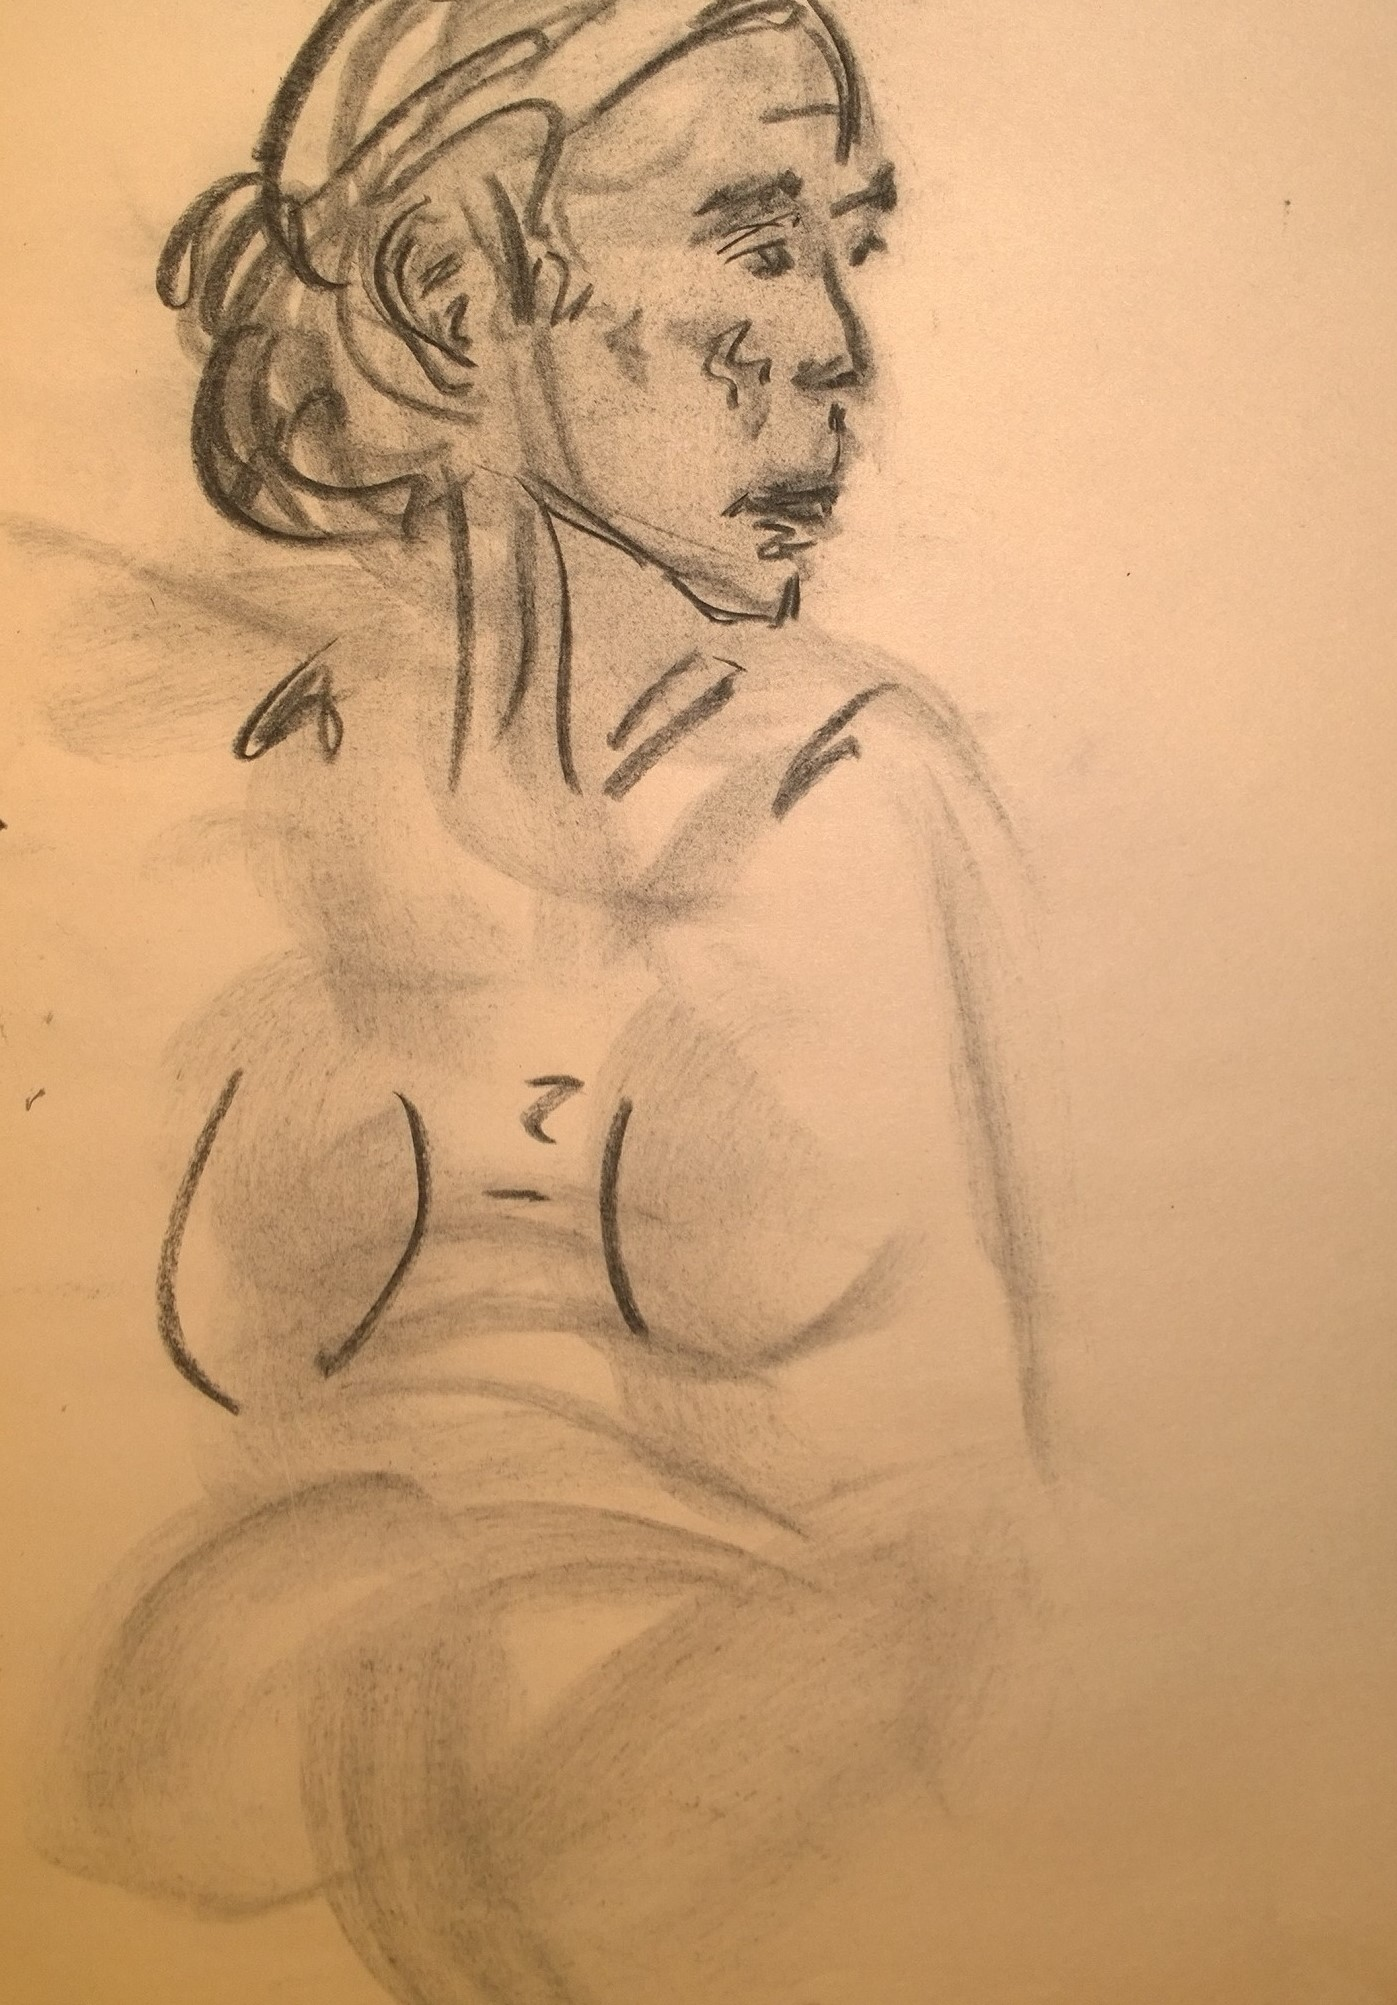 Charcoal portrait with body in light gray, by William Eaton